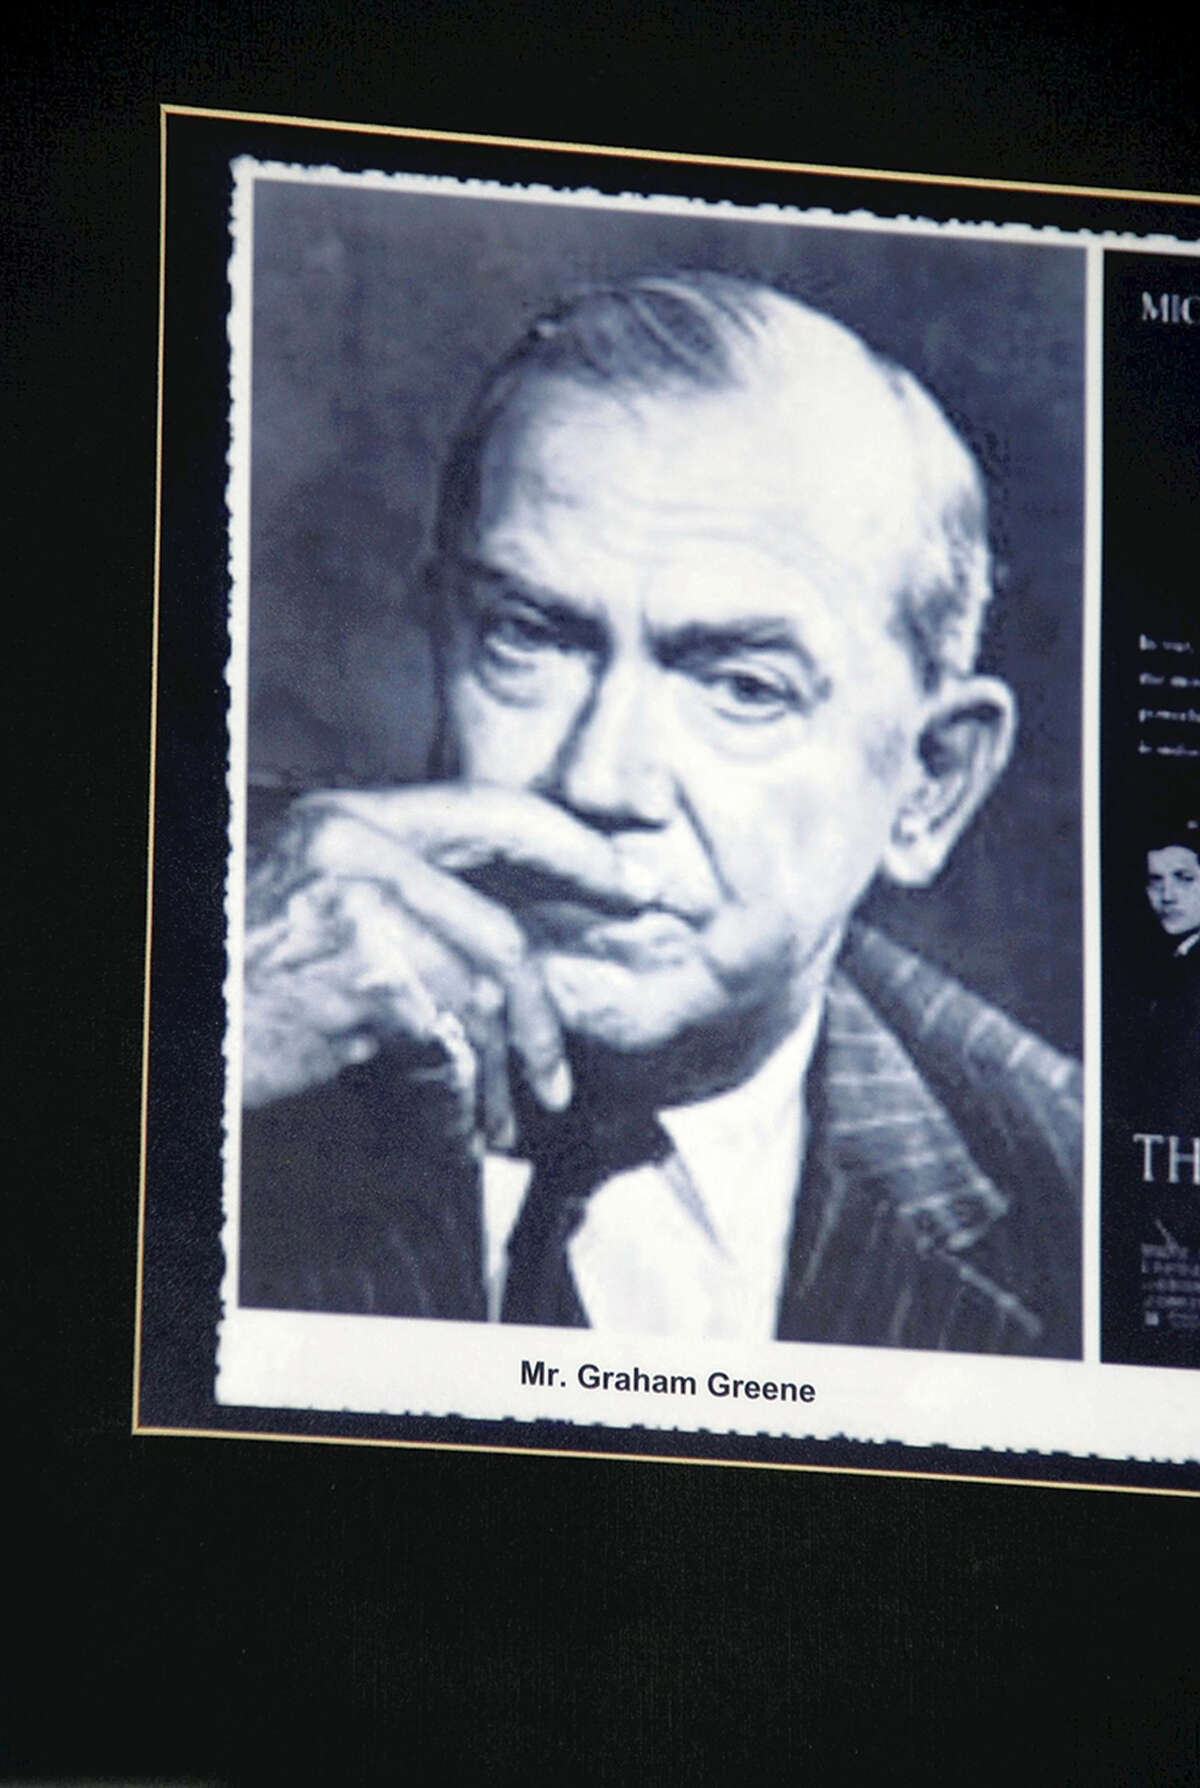 A photo of Graham Greene is on display in the Hotel Majestic in Ho Chi Minh City, Vietnam. Illustrates TRAVEL-GREENE (category i), by Kazuo Nagata © 2014, The Yomiuri Shimbun. Moved Monday, Dec. 1, 2014. (MUST CREDIT: Yomiuri Shimbun photo by Kazuo Nagata.)